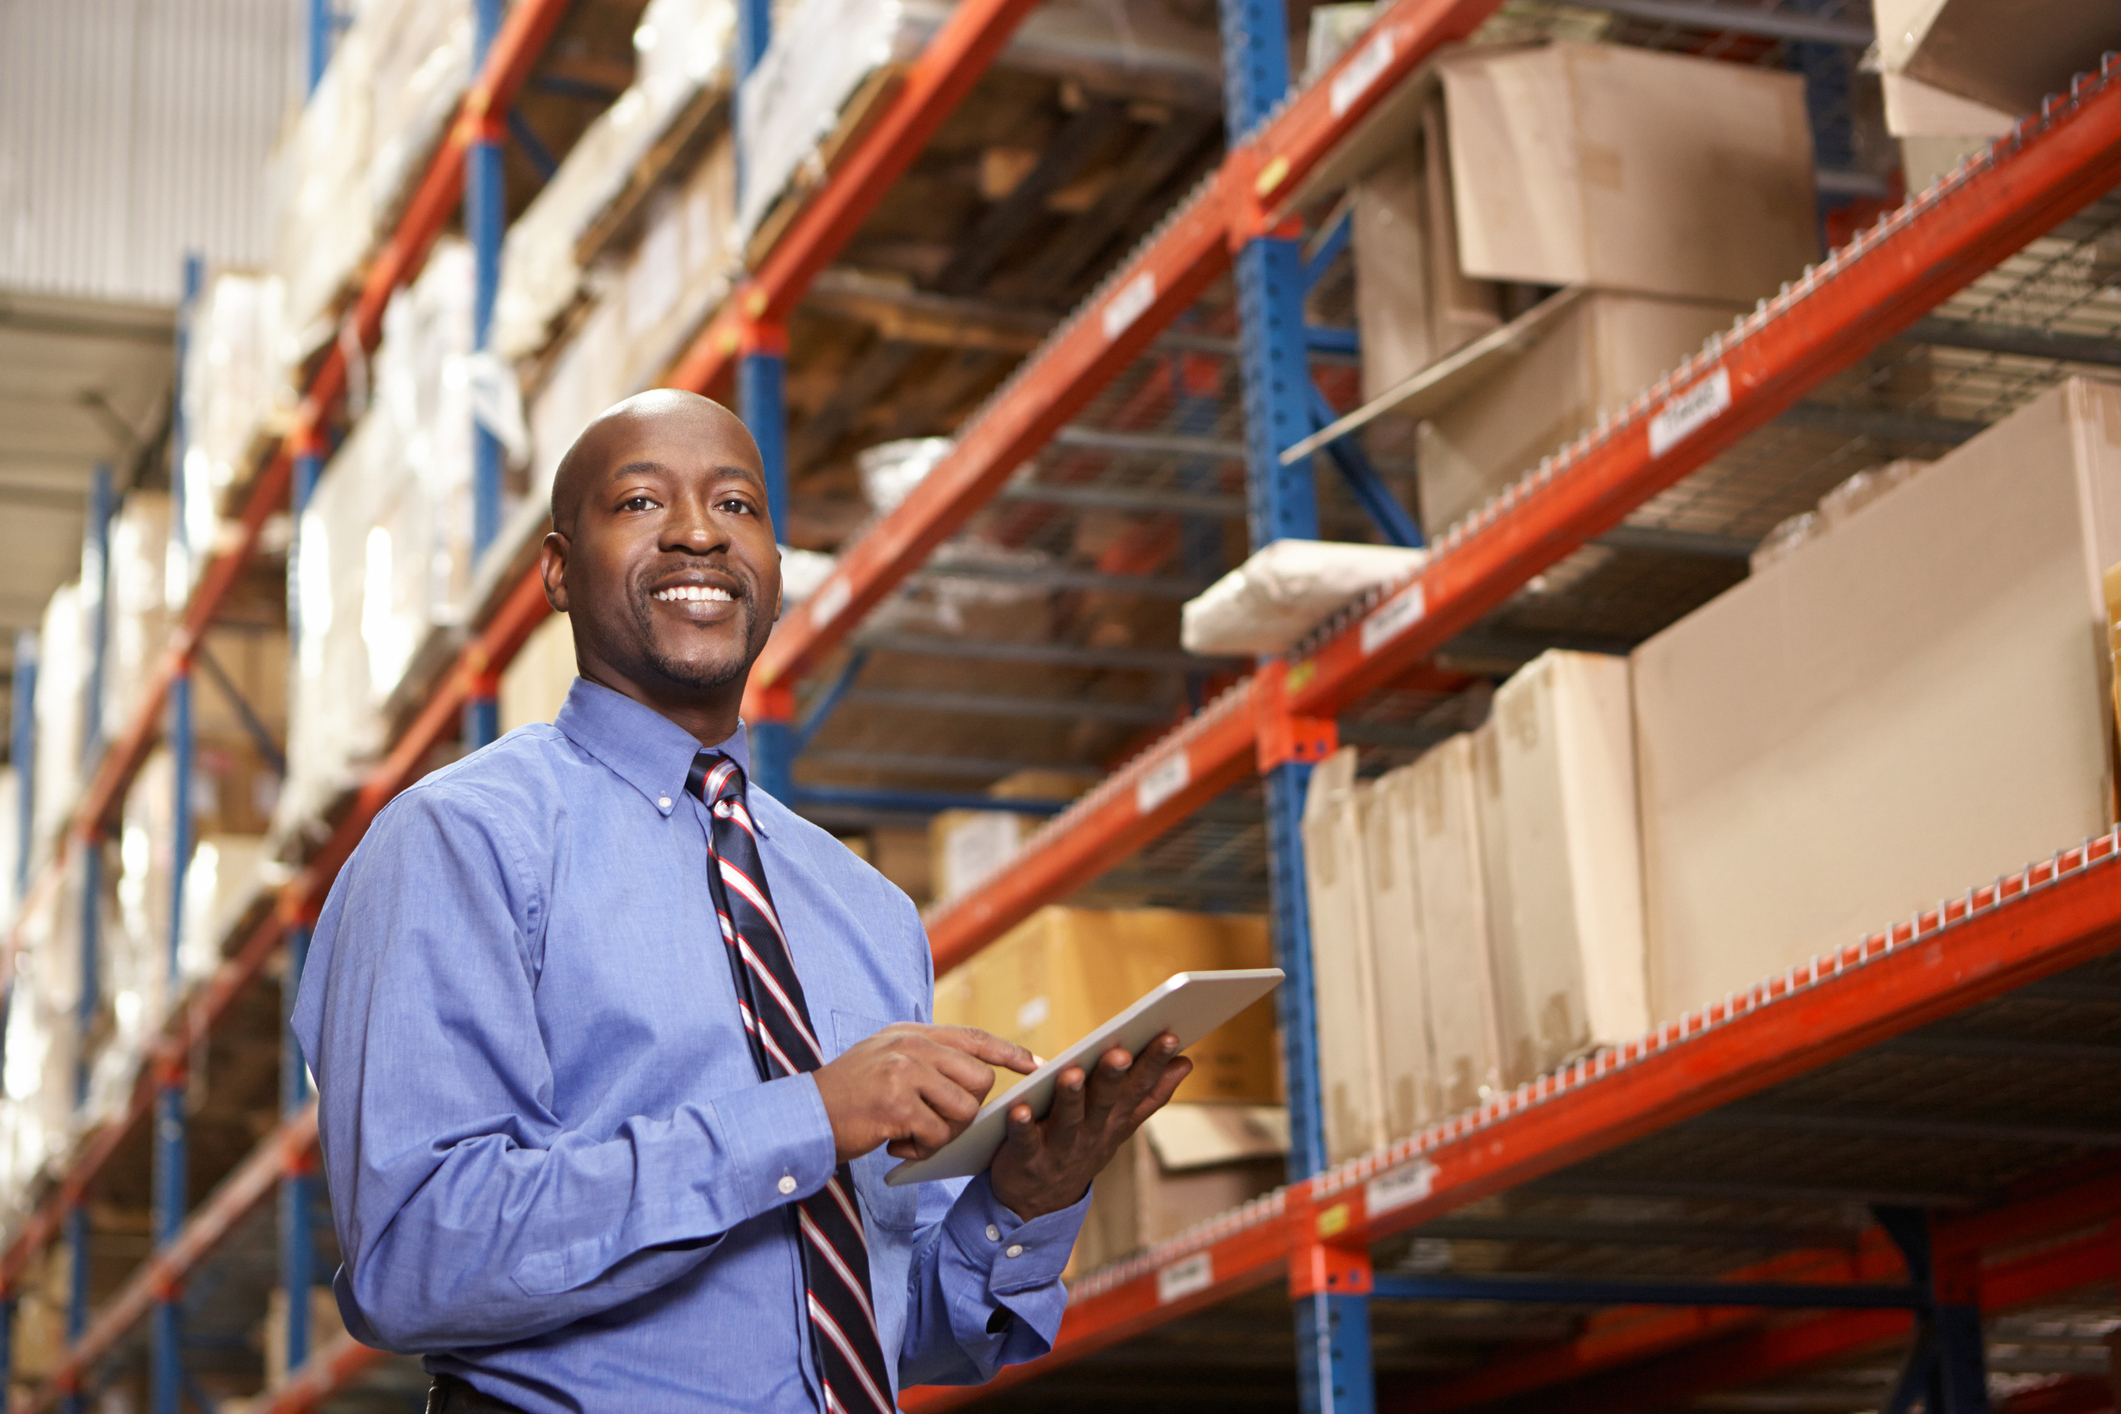 Businessman With Digital Tablet In Warehouse Looking At Camera Smiling